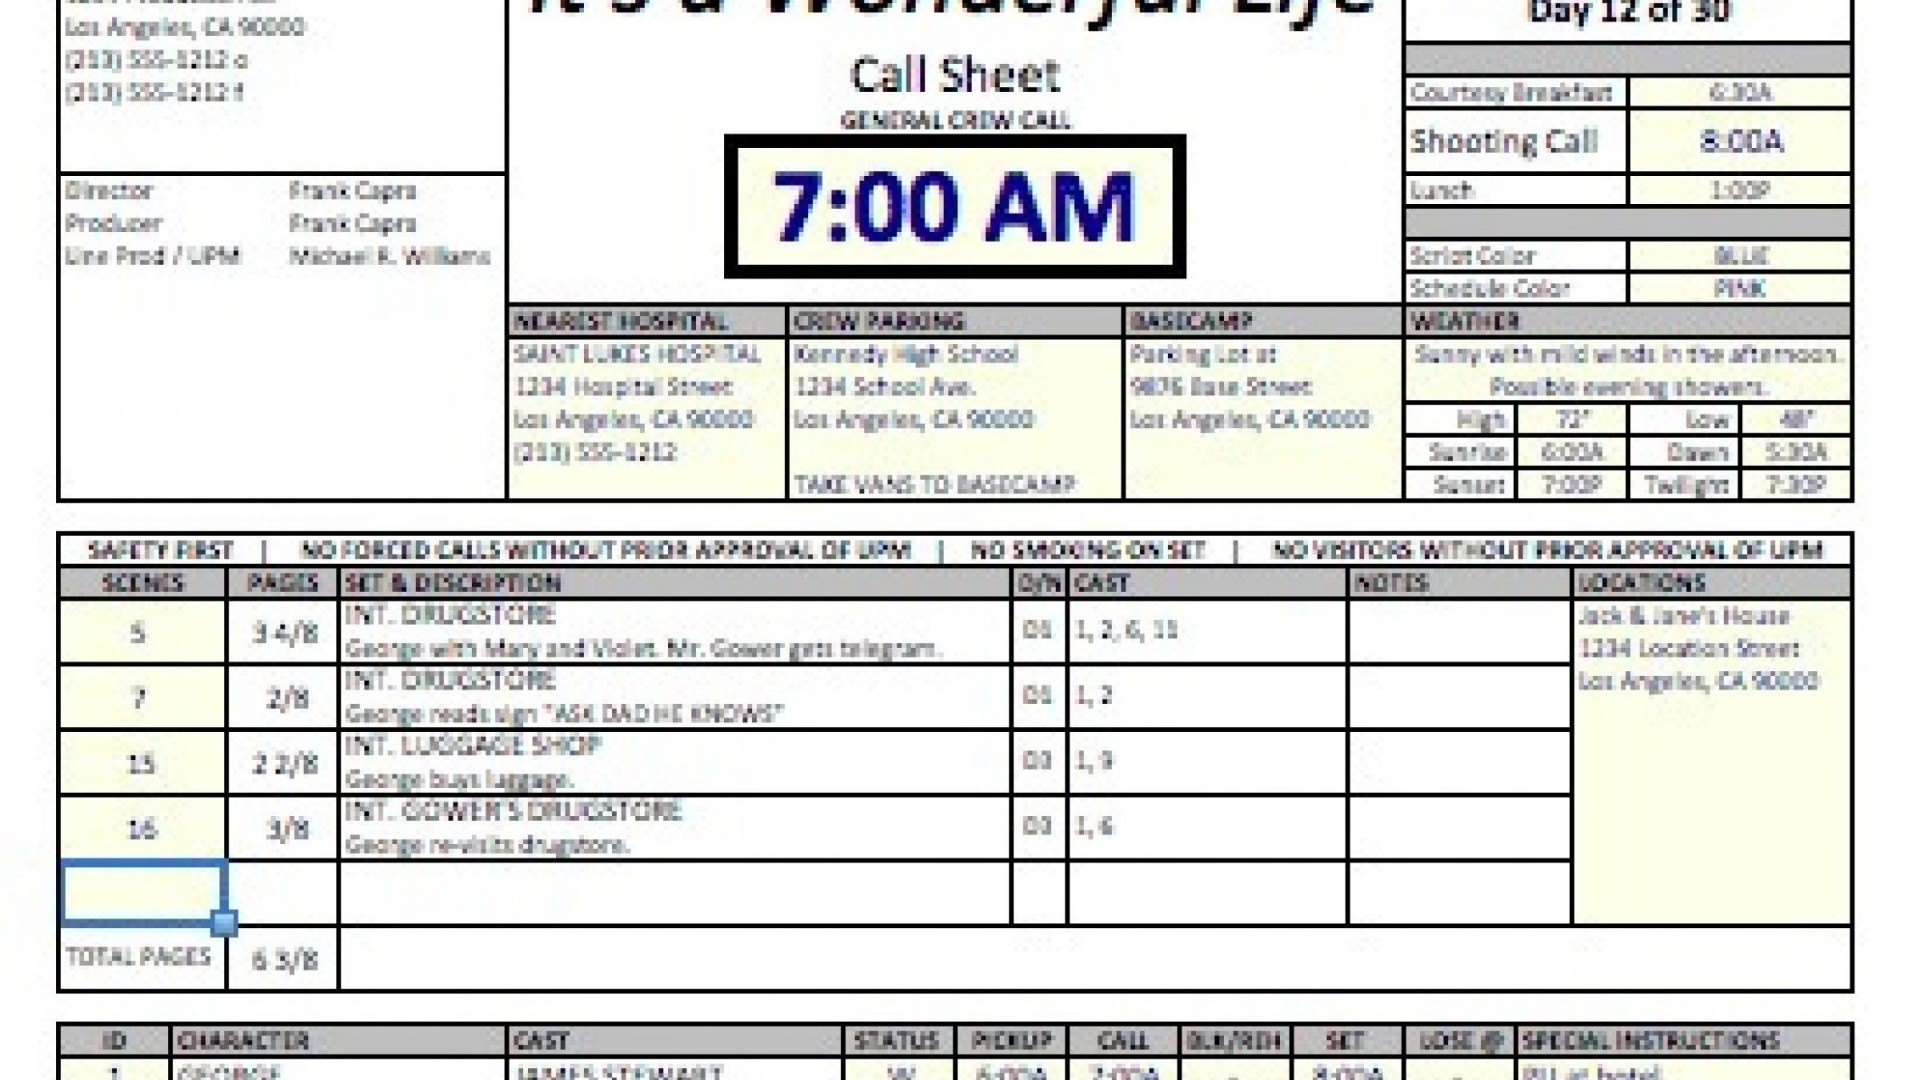 010 Frightening Film Call Sheet Template Inspiration  Movie Excel Example Google Doc1920